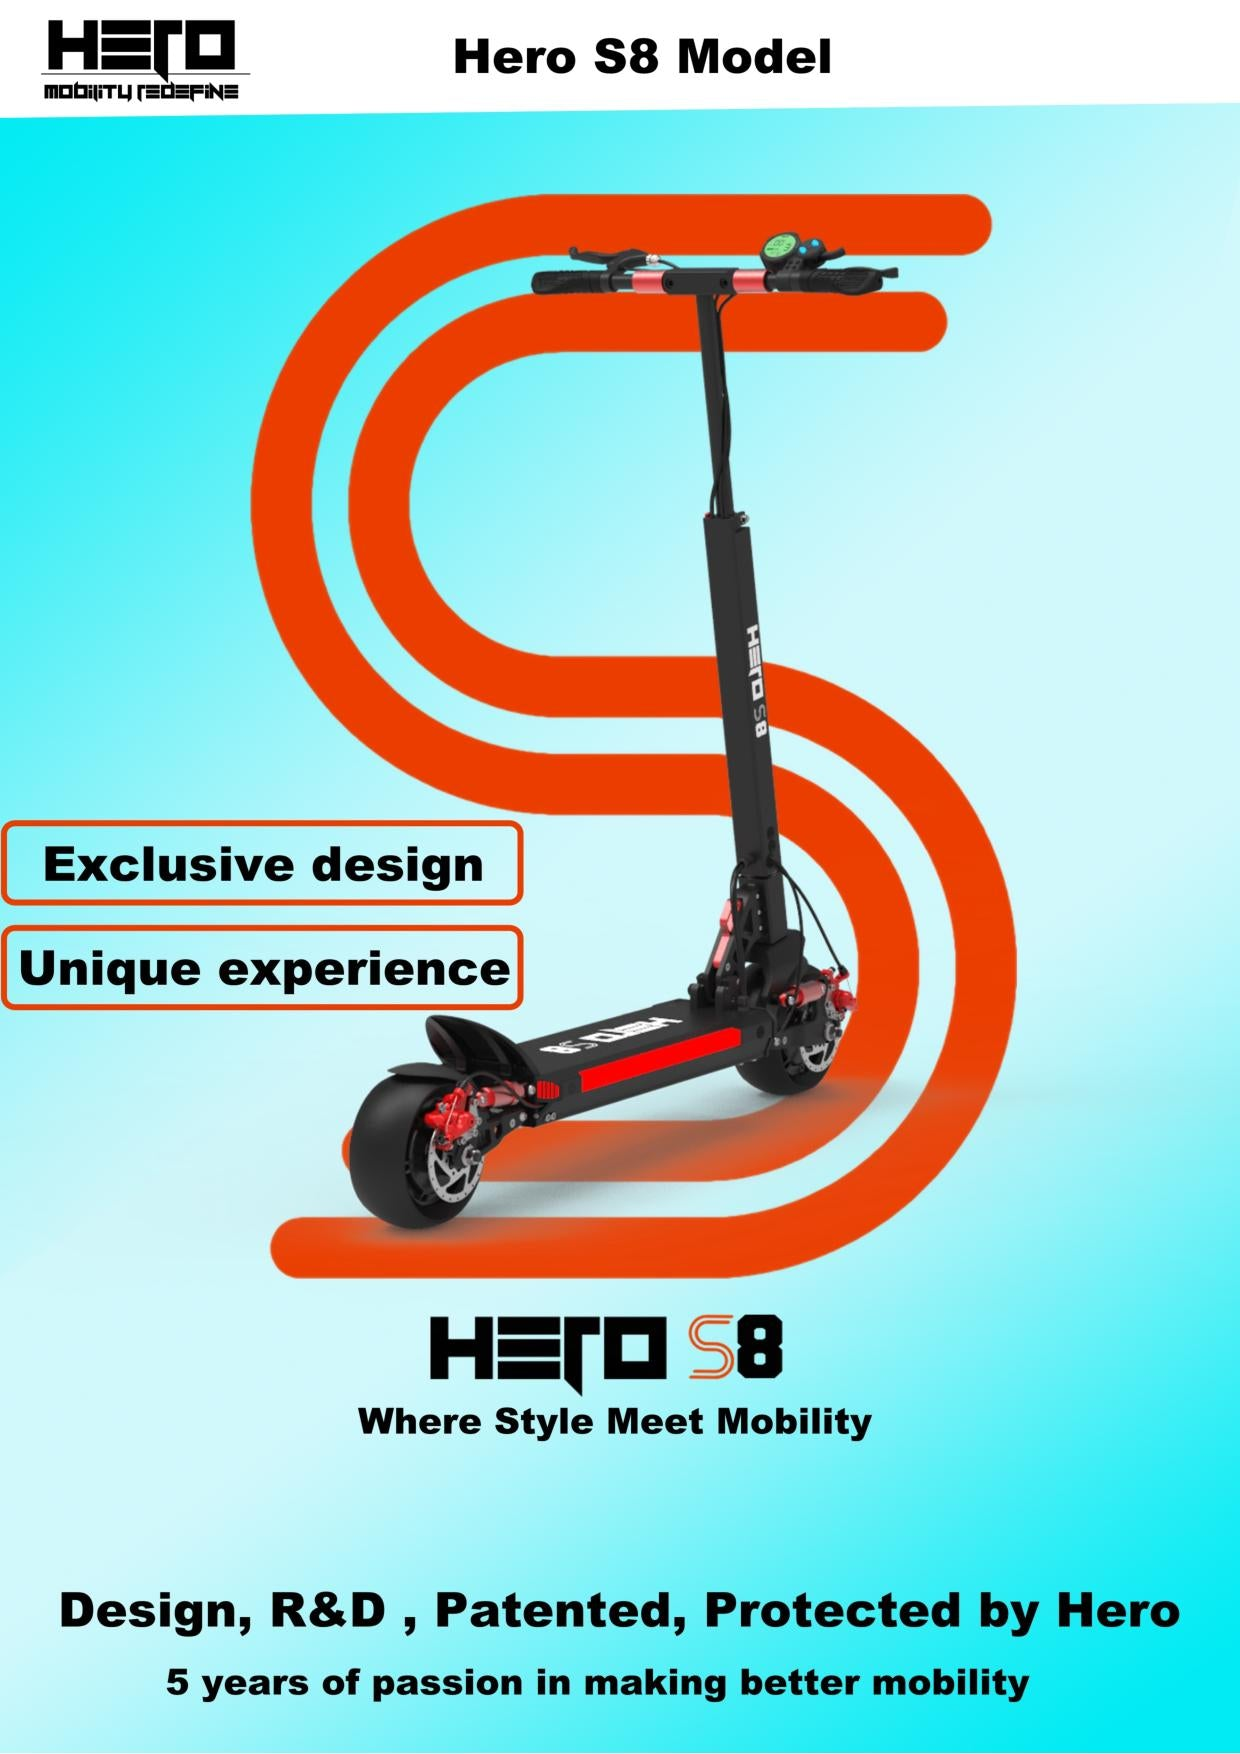 Urban Hero S8 Electric Scooter